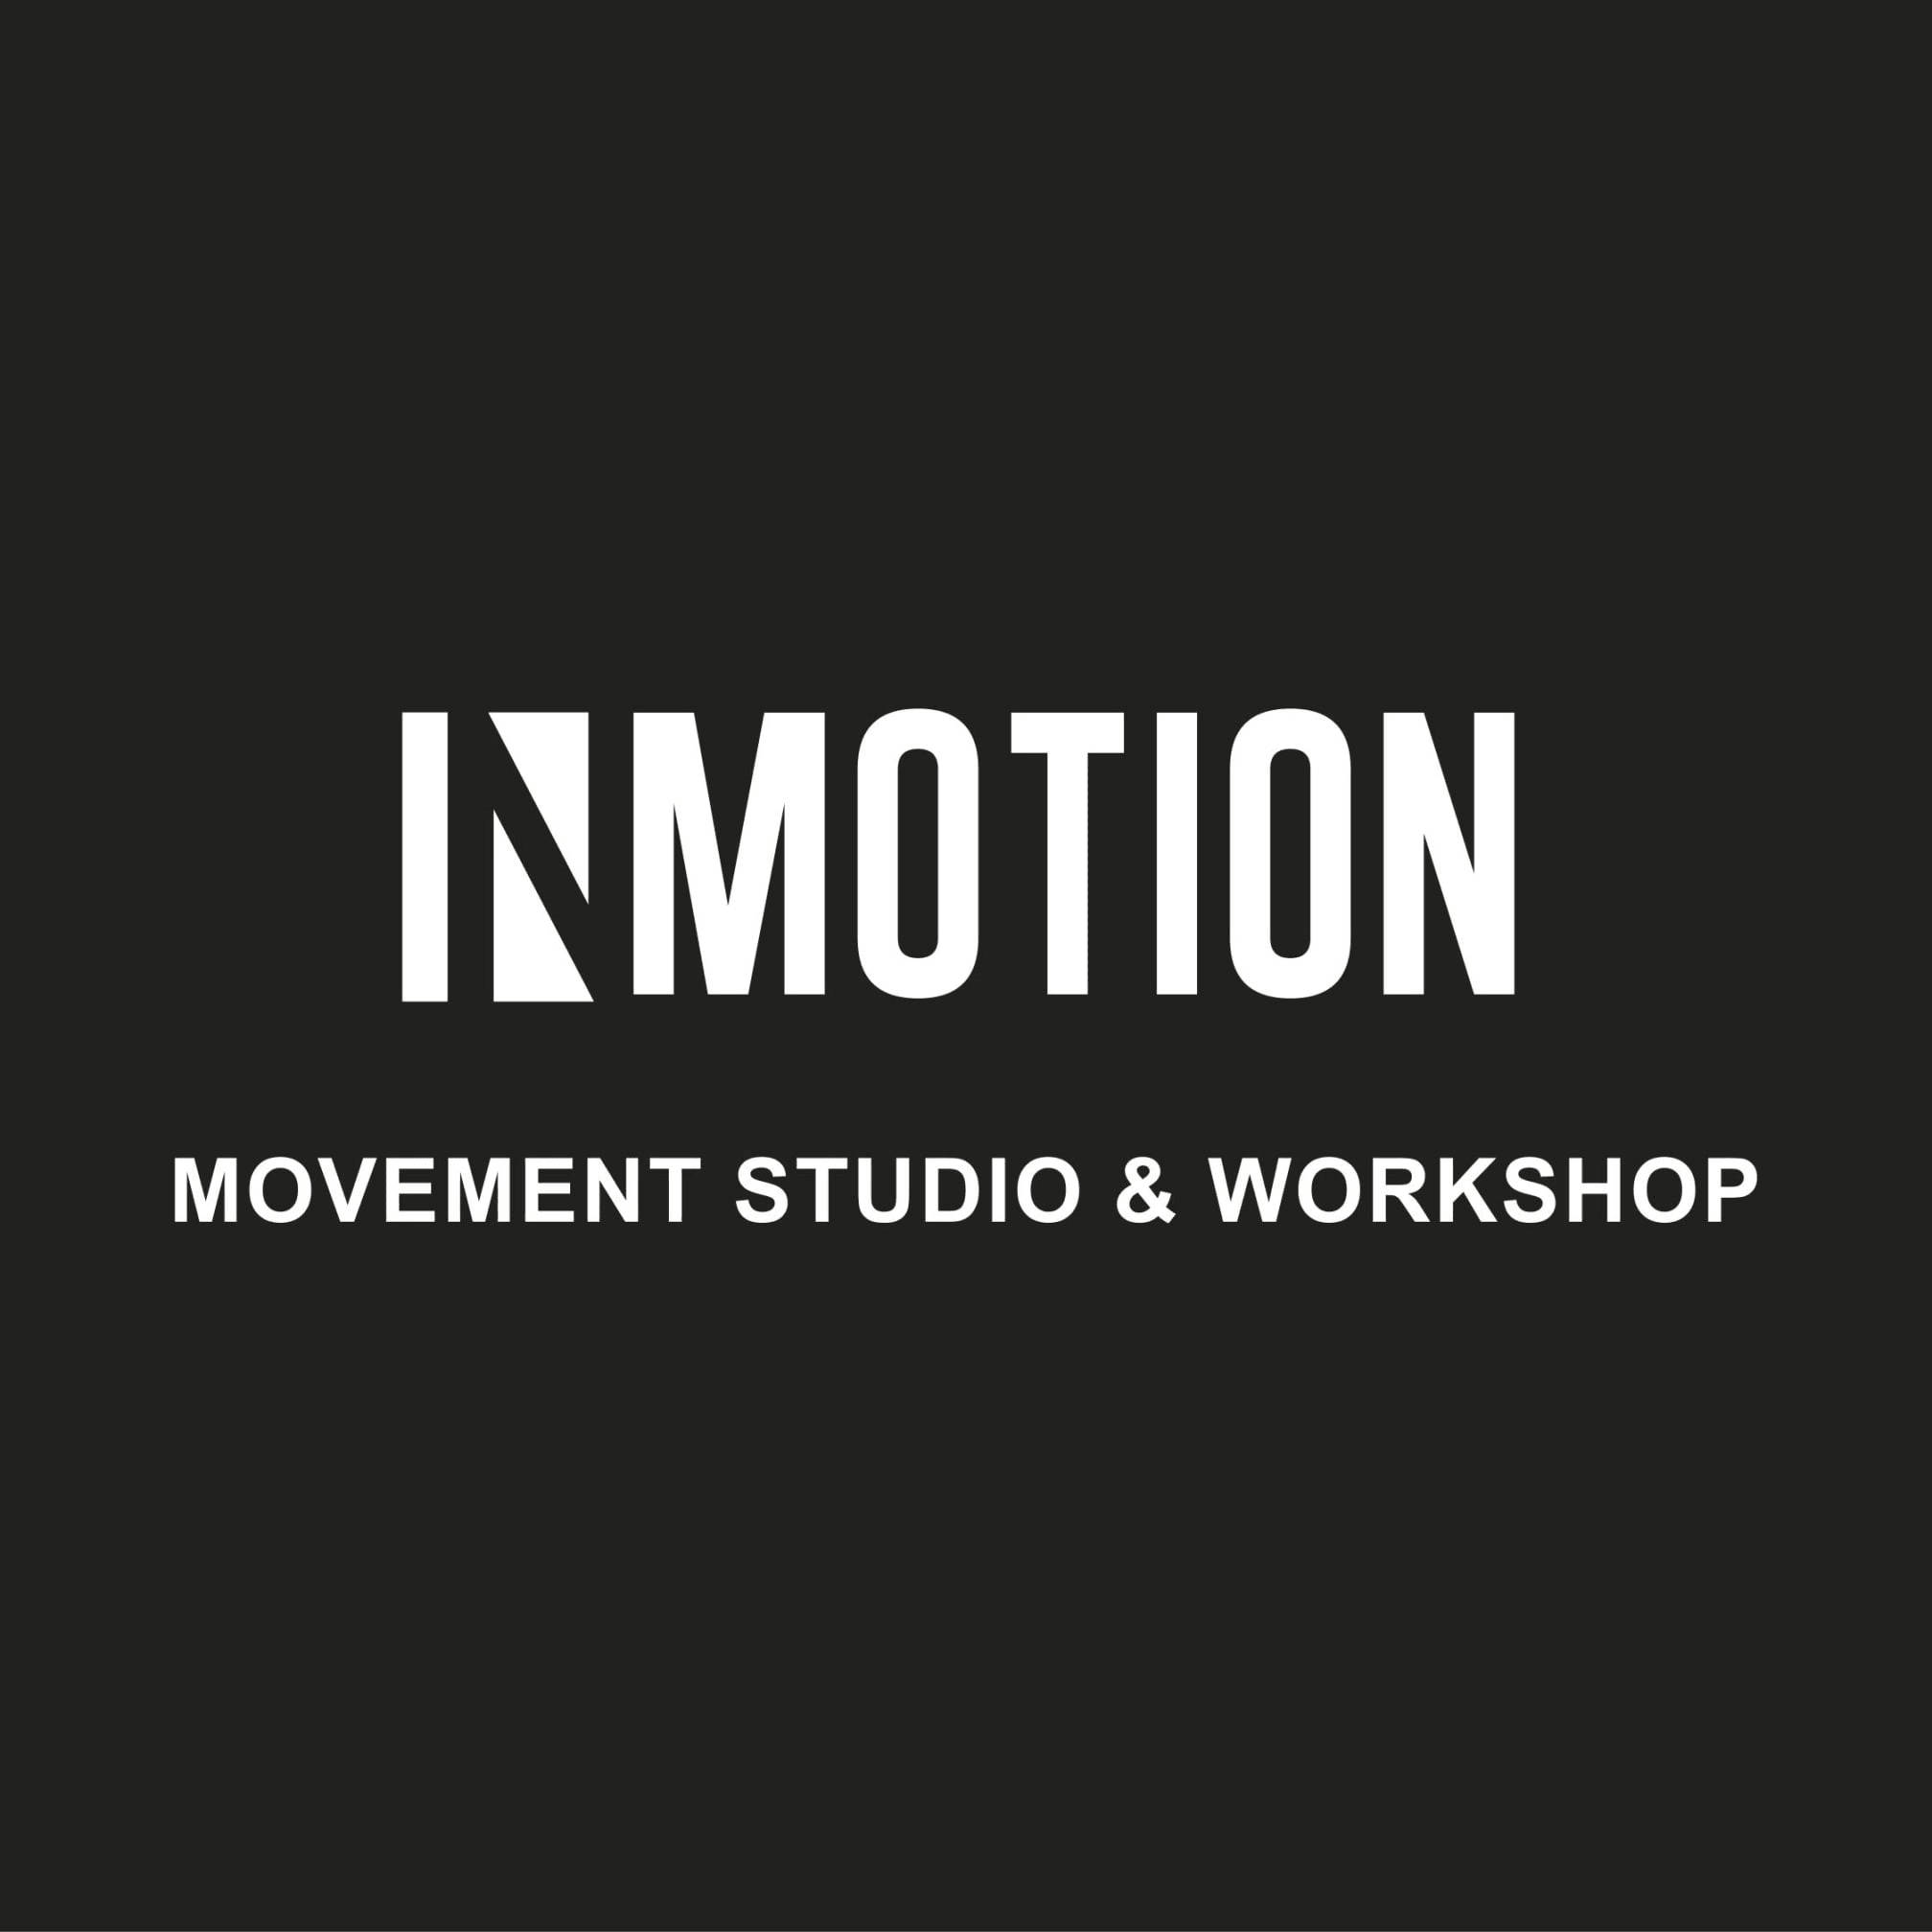 In Motion - London, London NW1 8HJ - 020 7117 2815 | ShowMeLocal.com